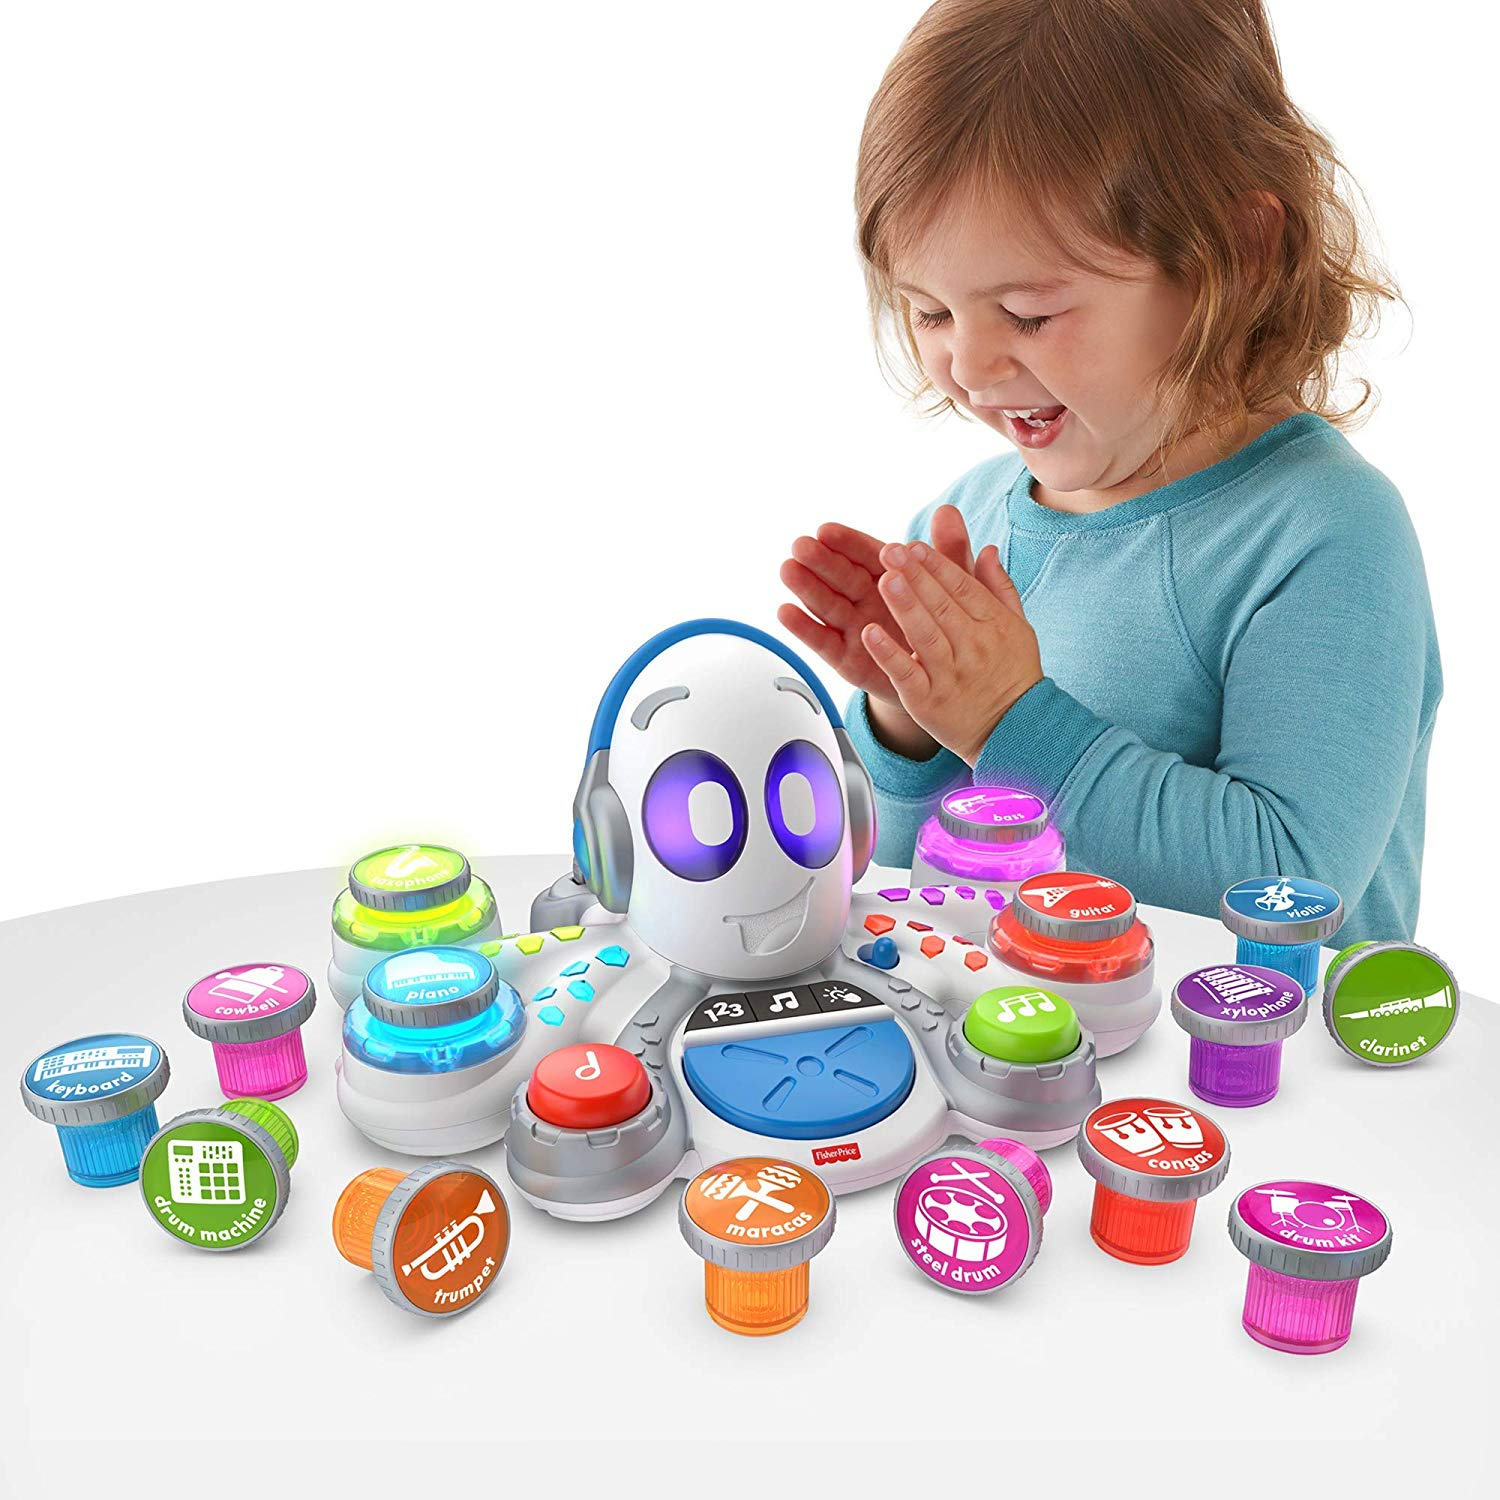 fisher-price releases brilliant holiday toys | this girl is playing with her rocktopus